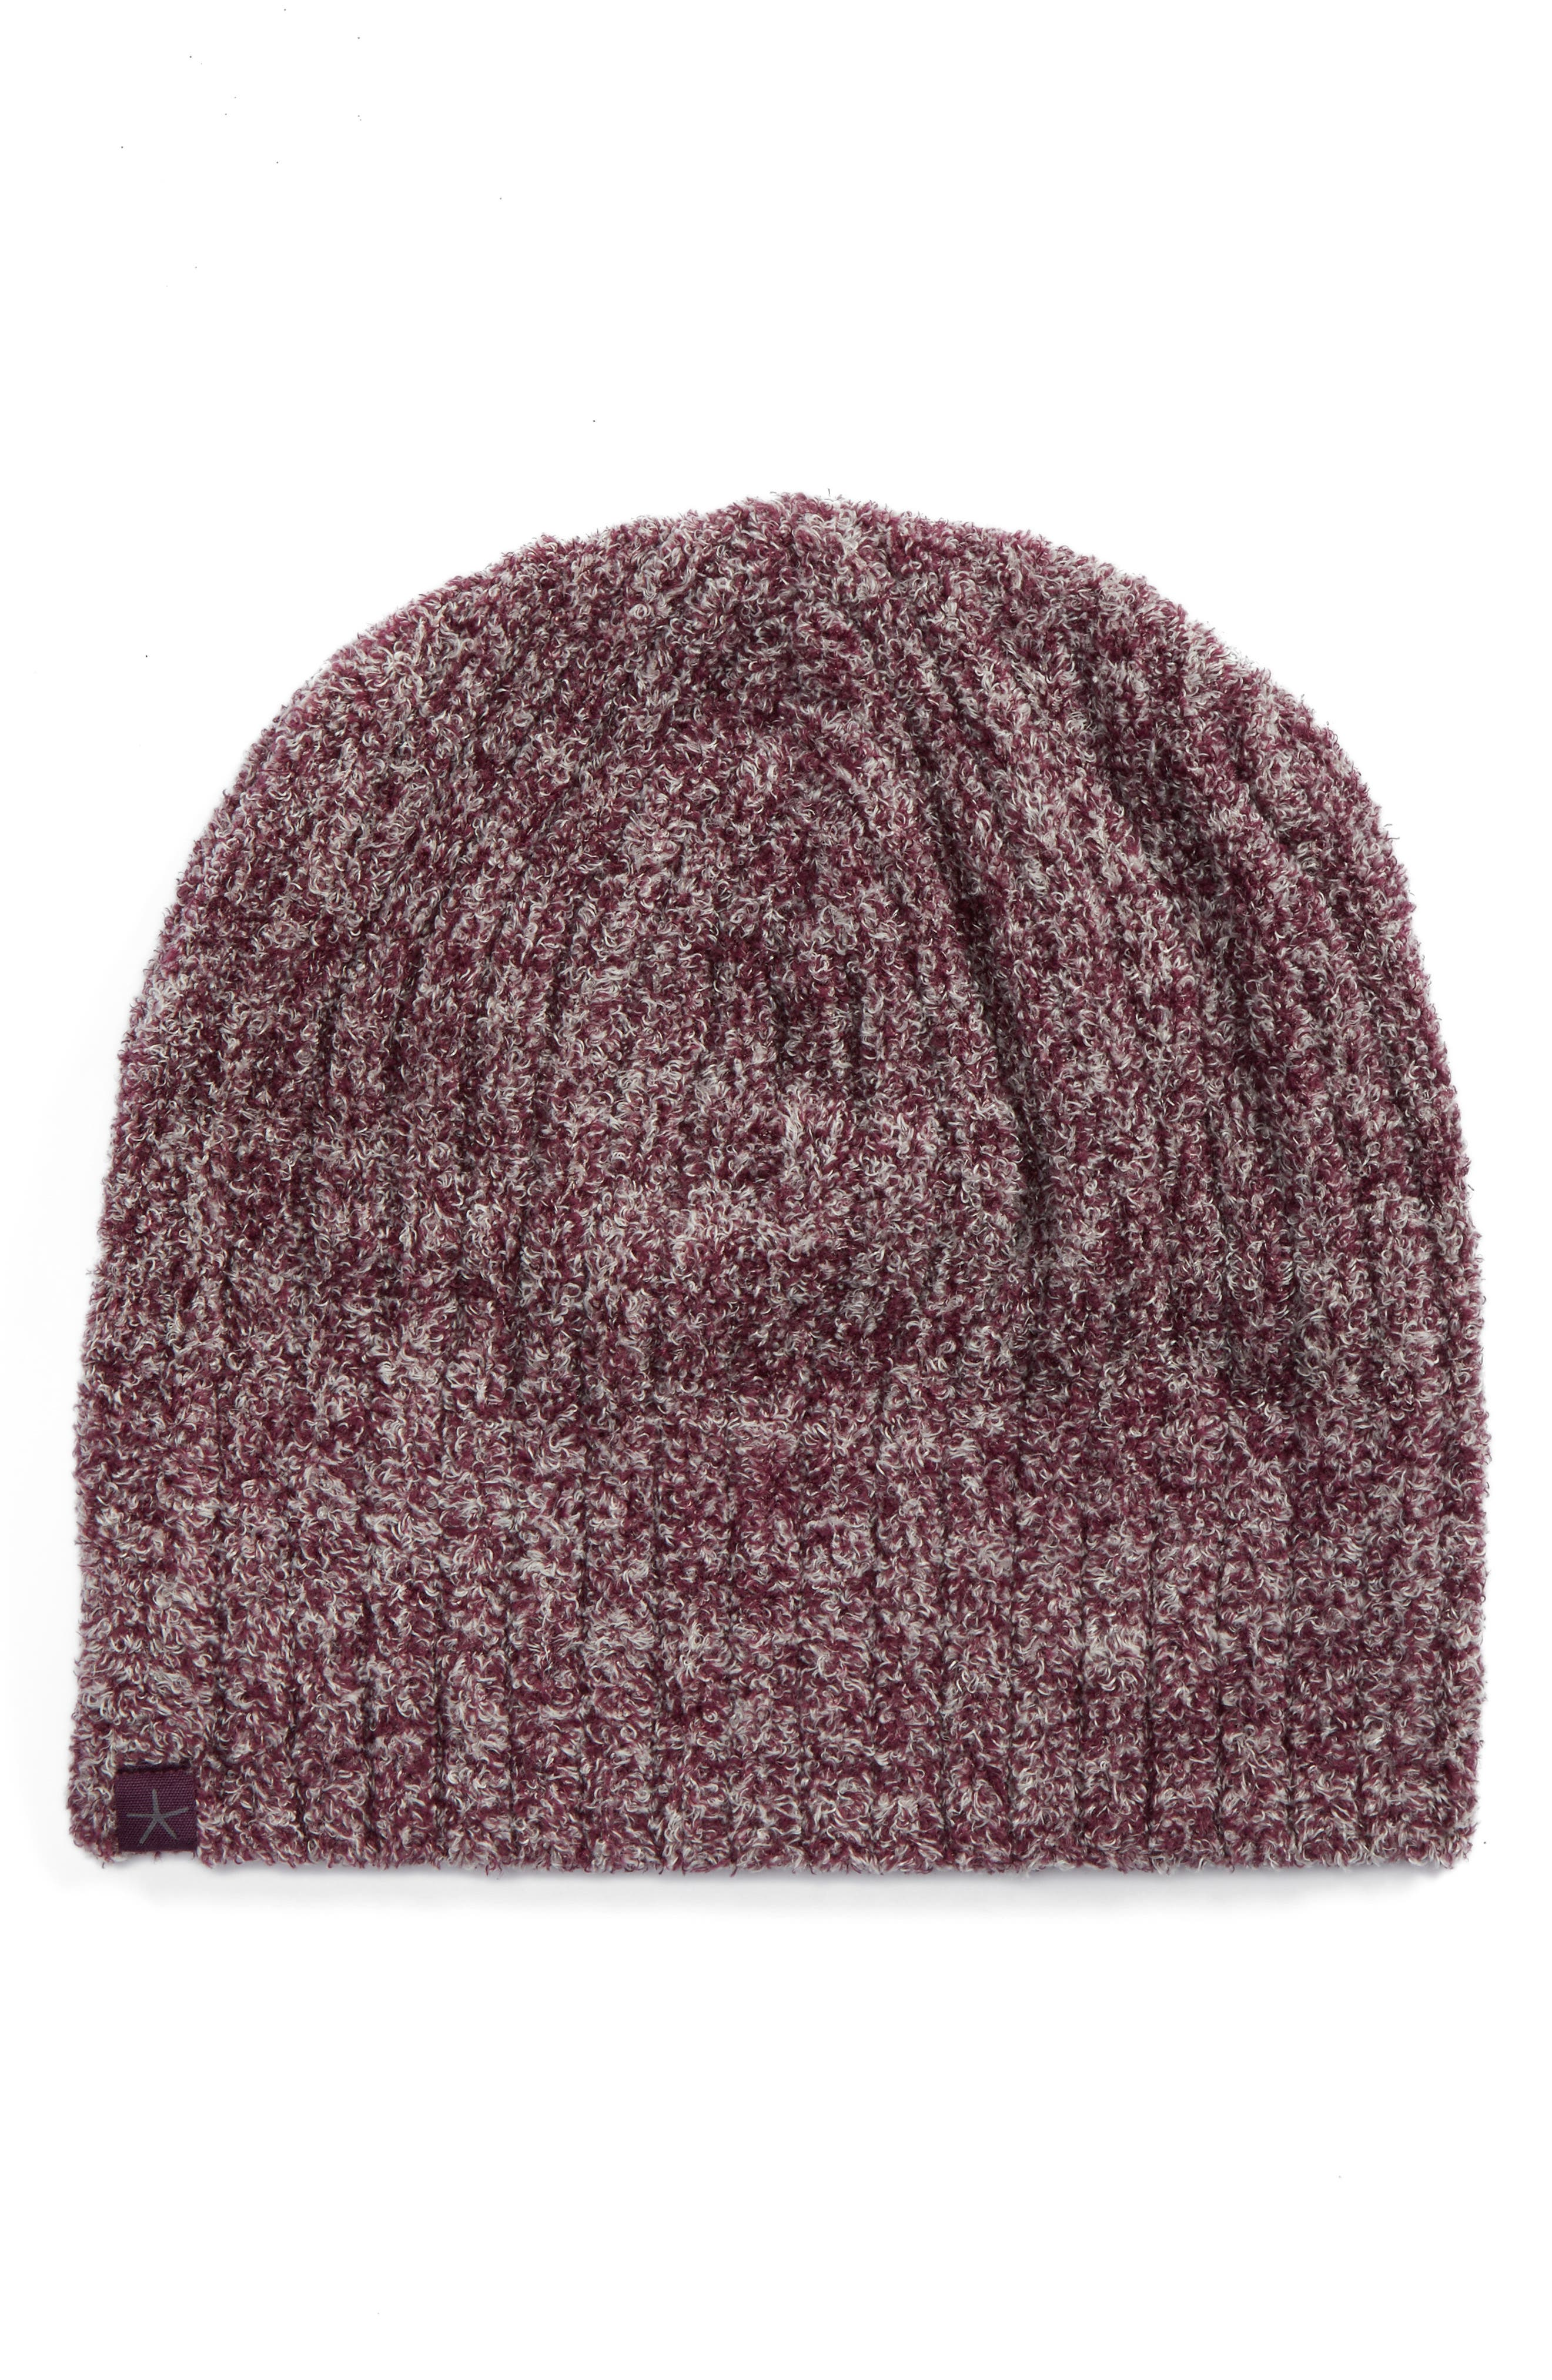 Circle Ribbed Beanie,                         Main,                         color, Burgundy/ Stone Heather